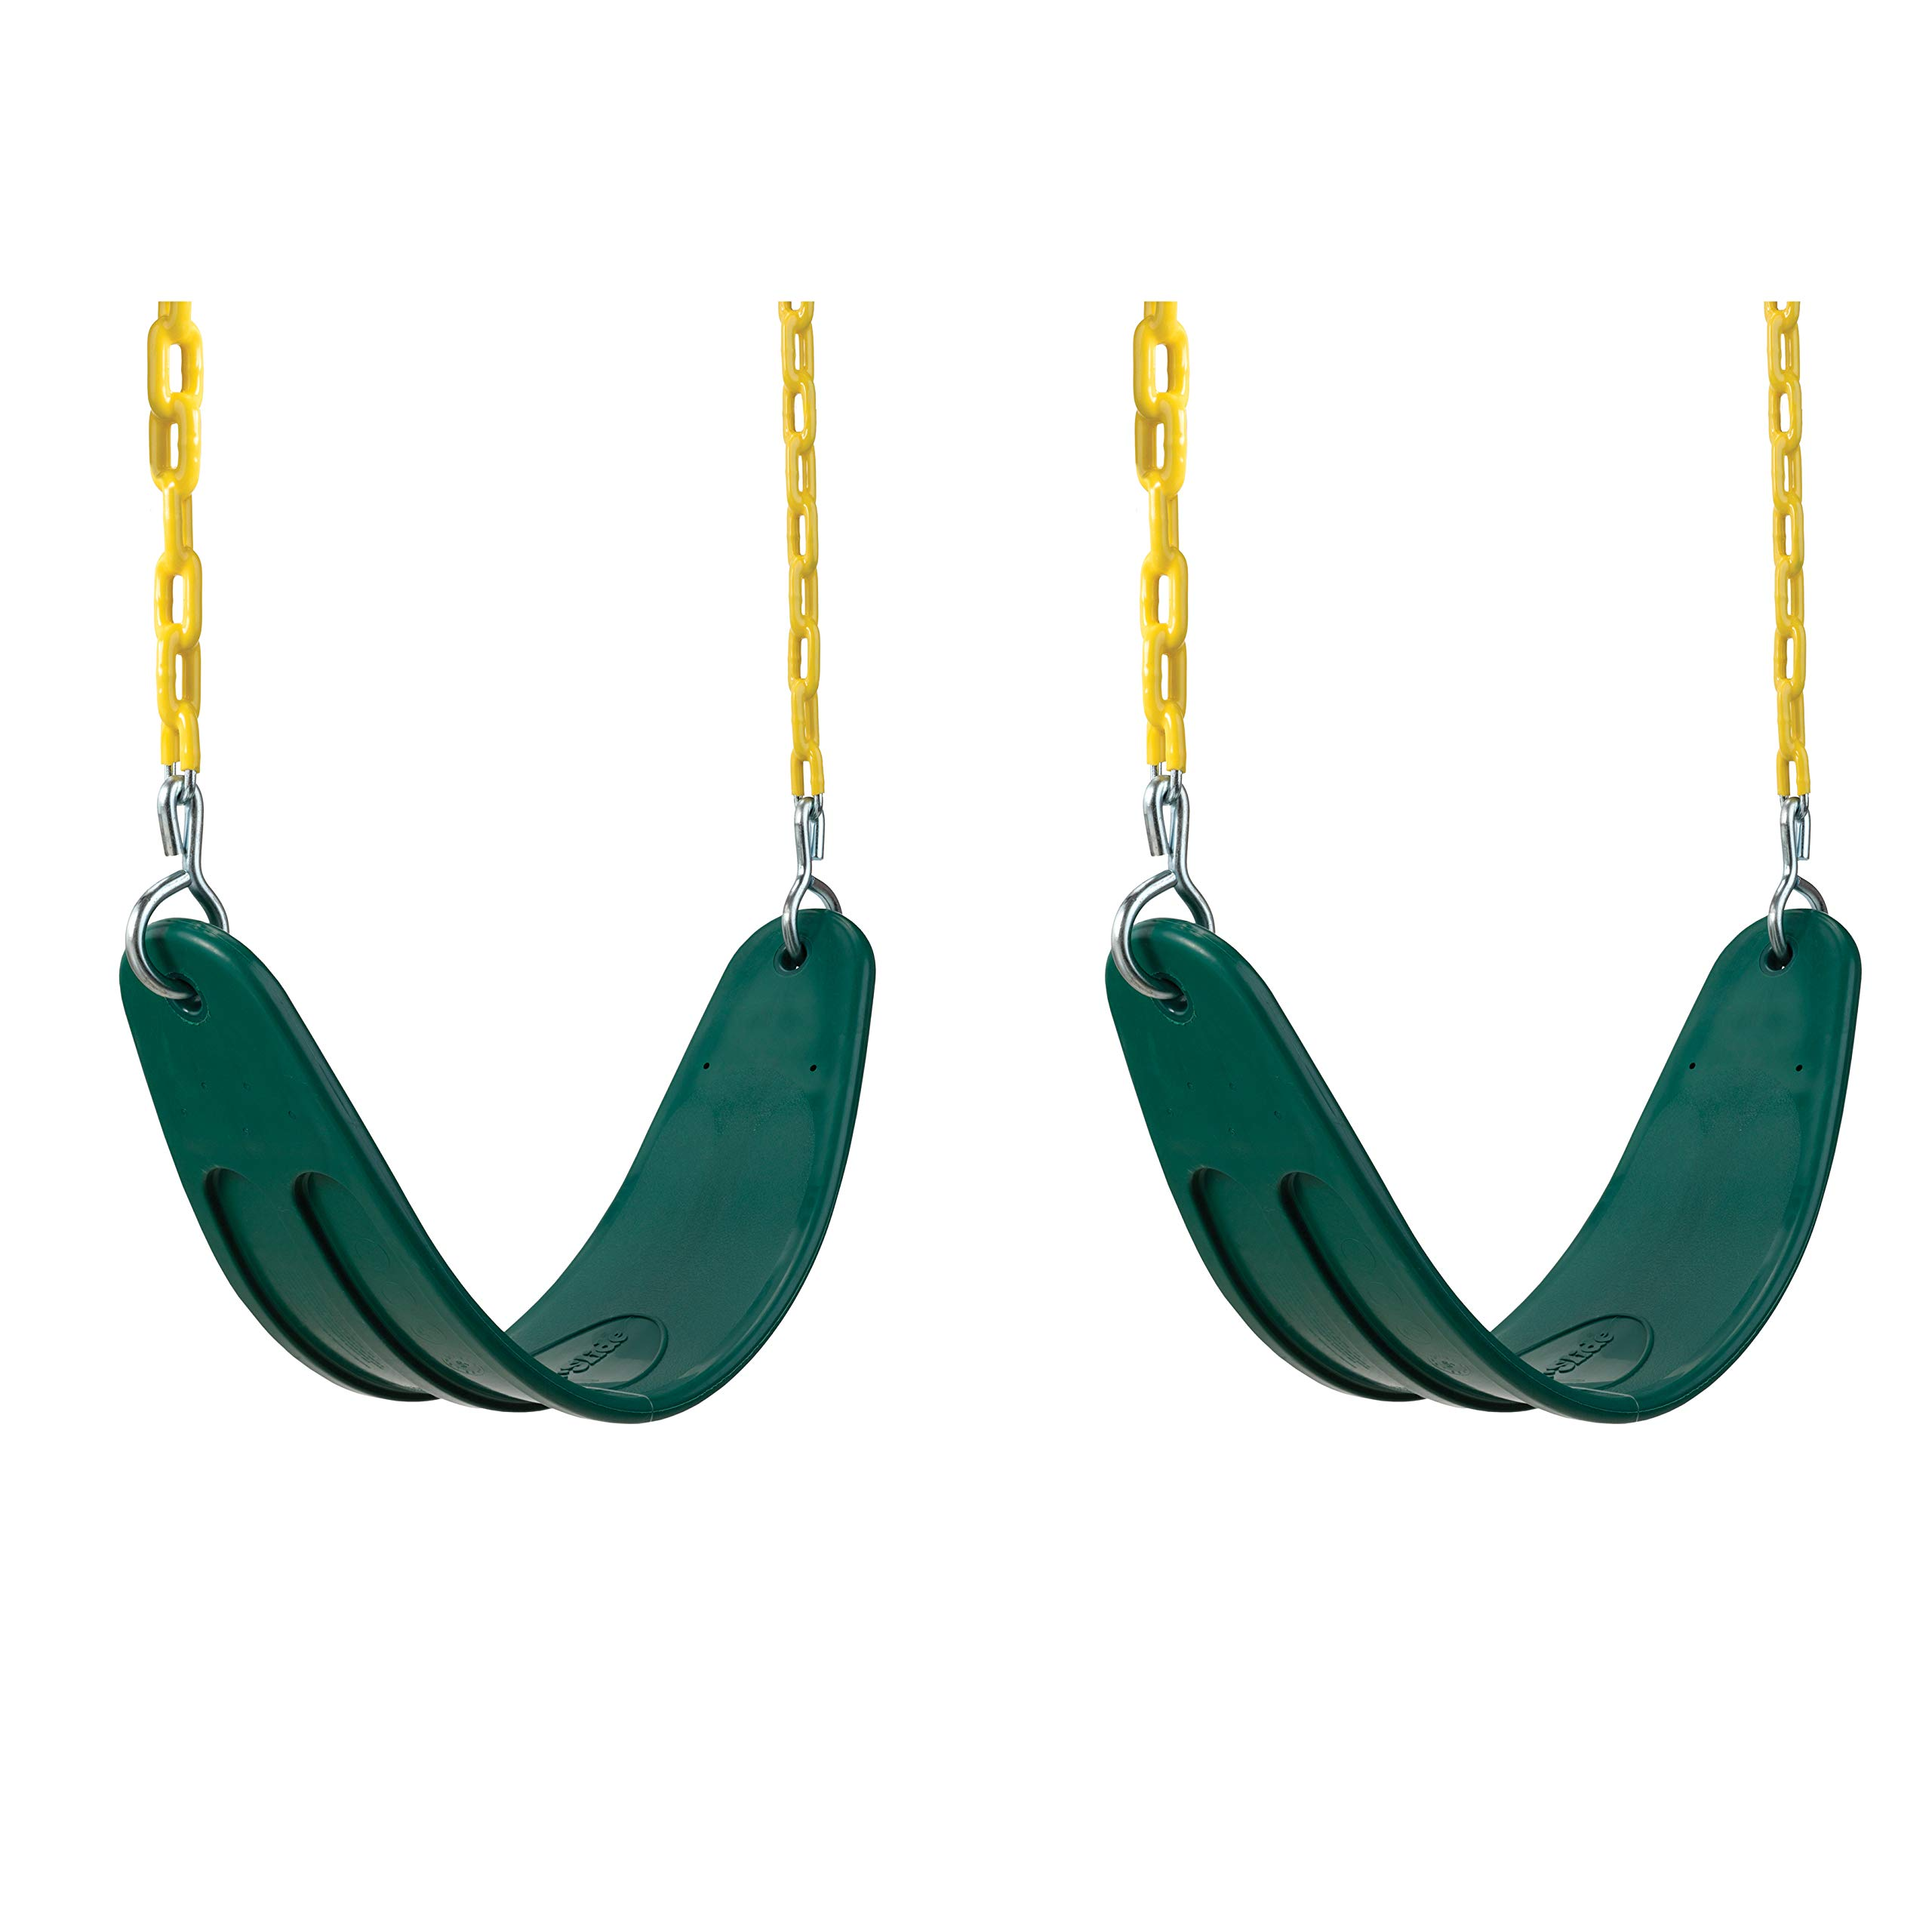 Swing-N-Slide Extreme Heavy Duty Swing Seat Set Outdoor Playground Swings with Coated Chains & Quick Links, Green, Pack of 2